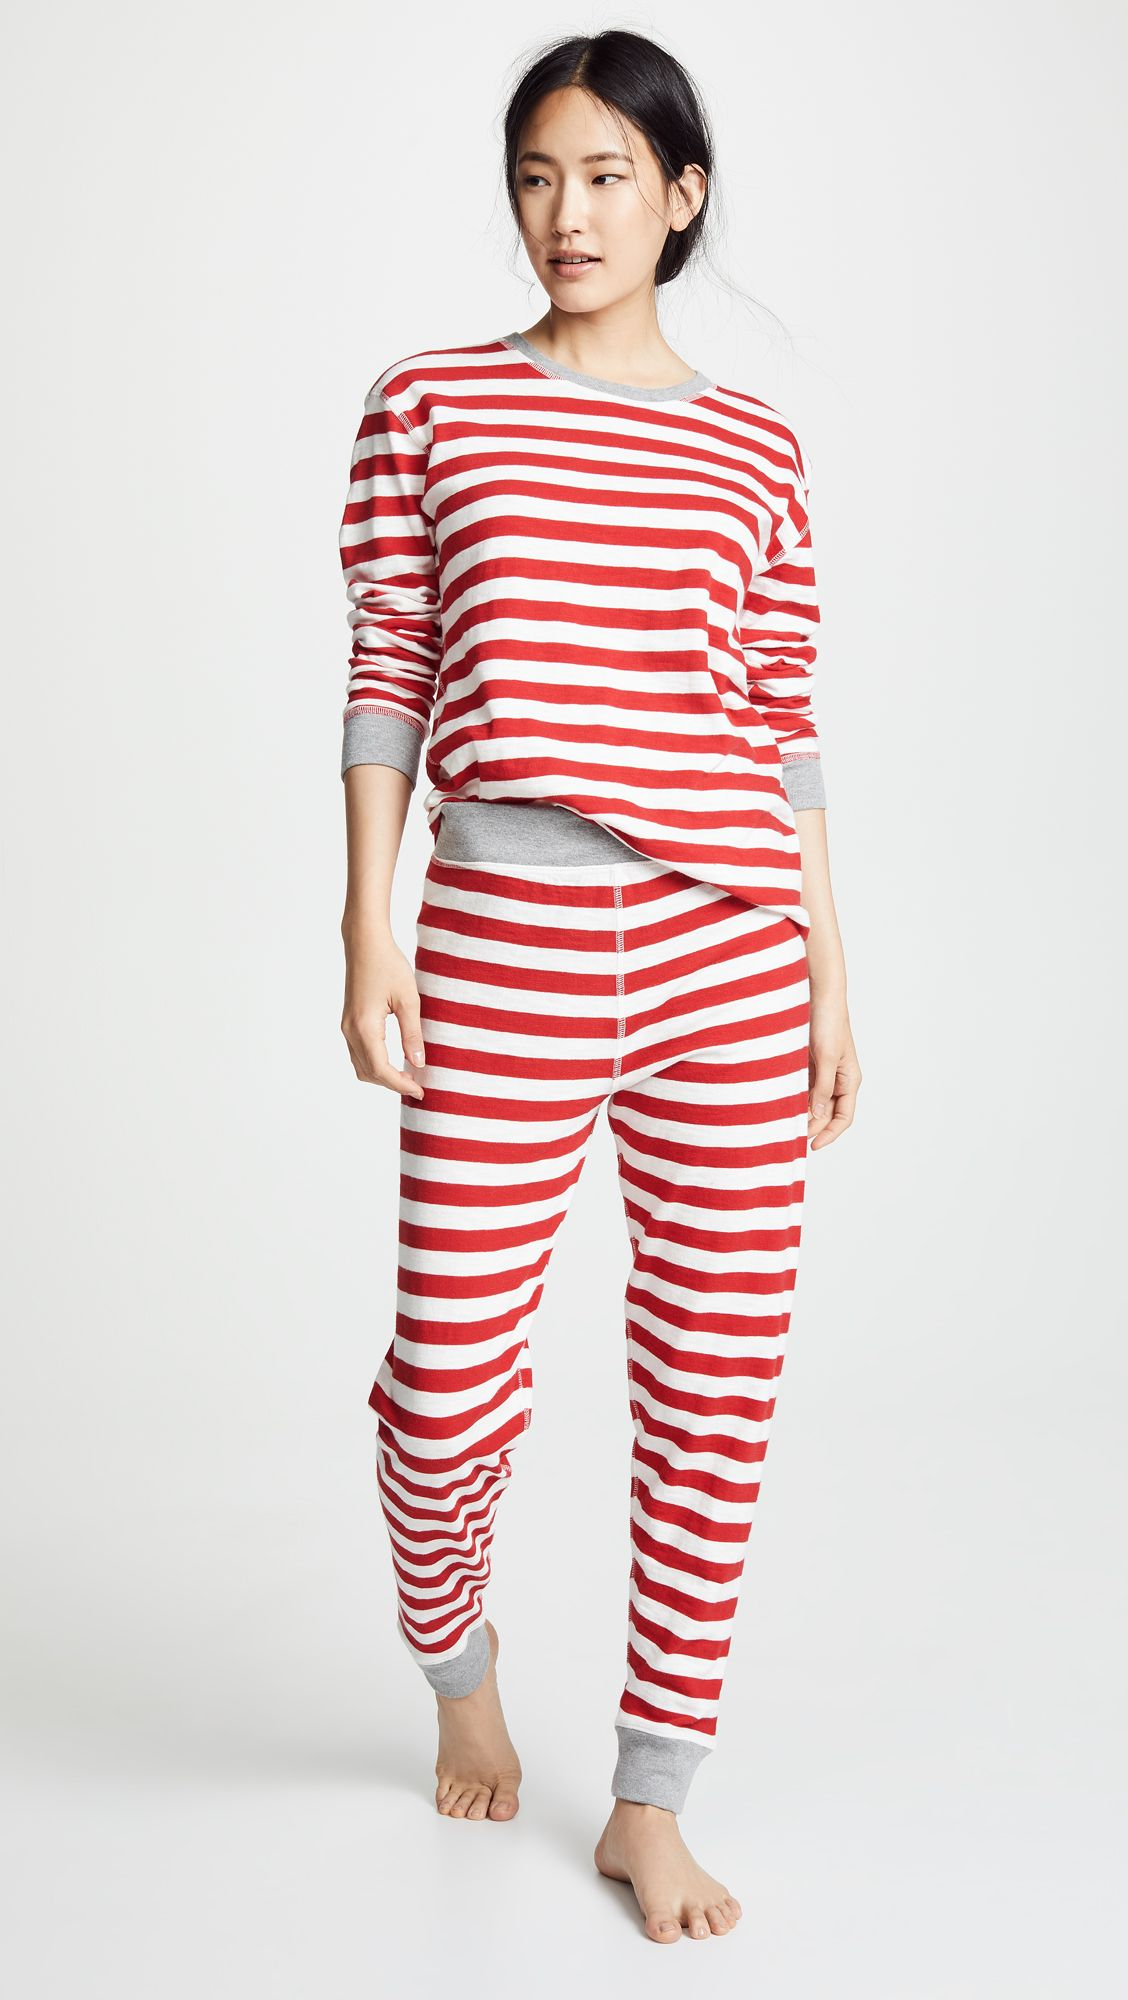 064f0e2a1c4f Holiday Pajamas for the Entire Family